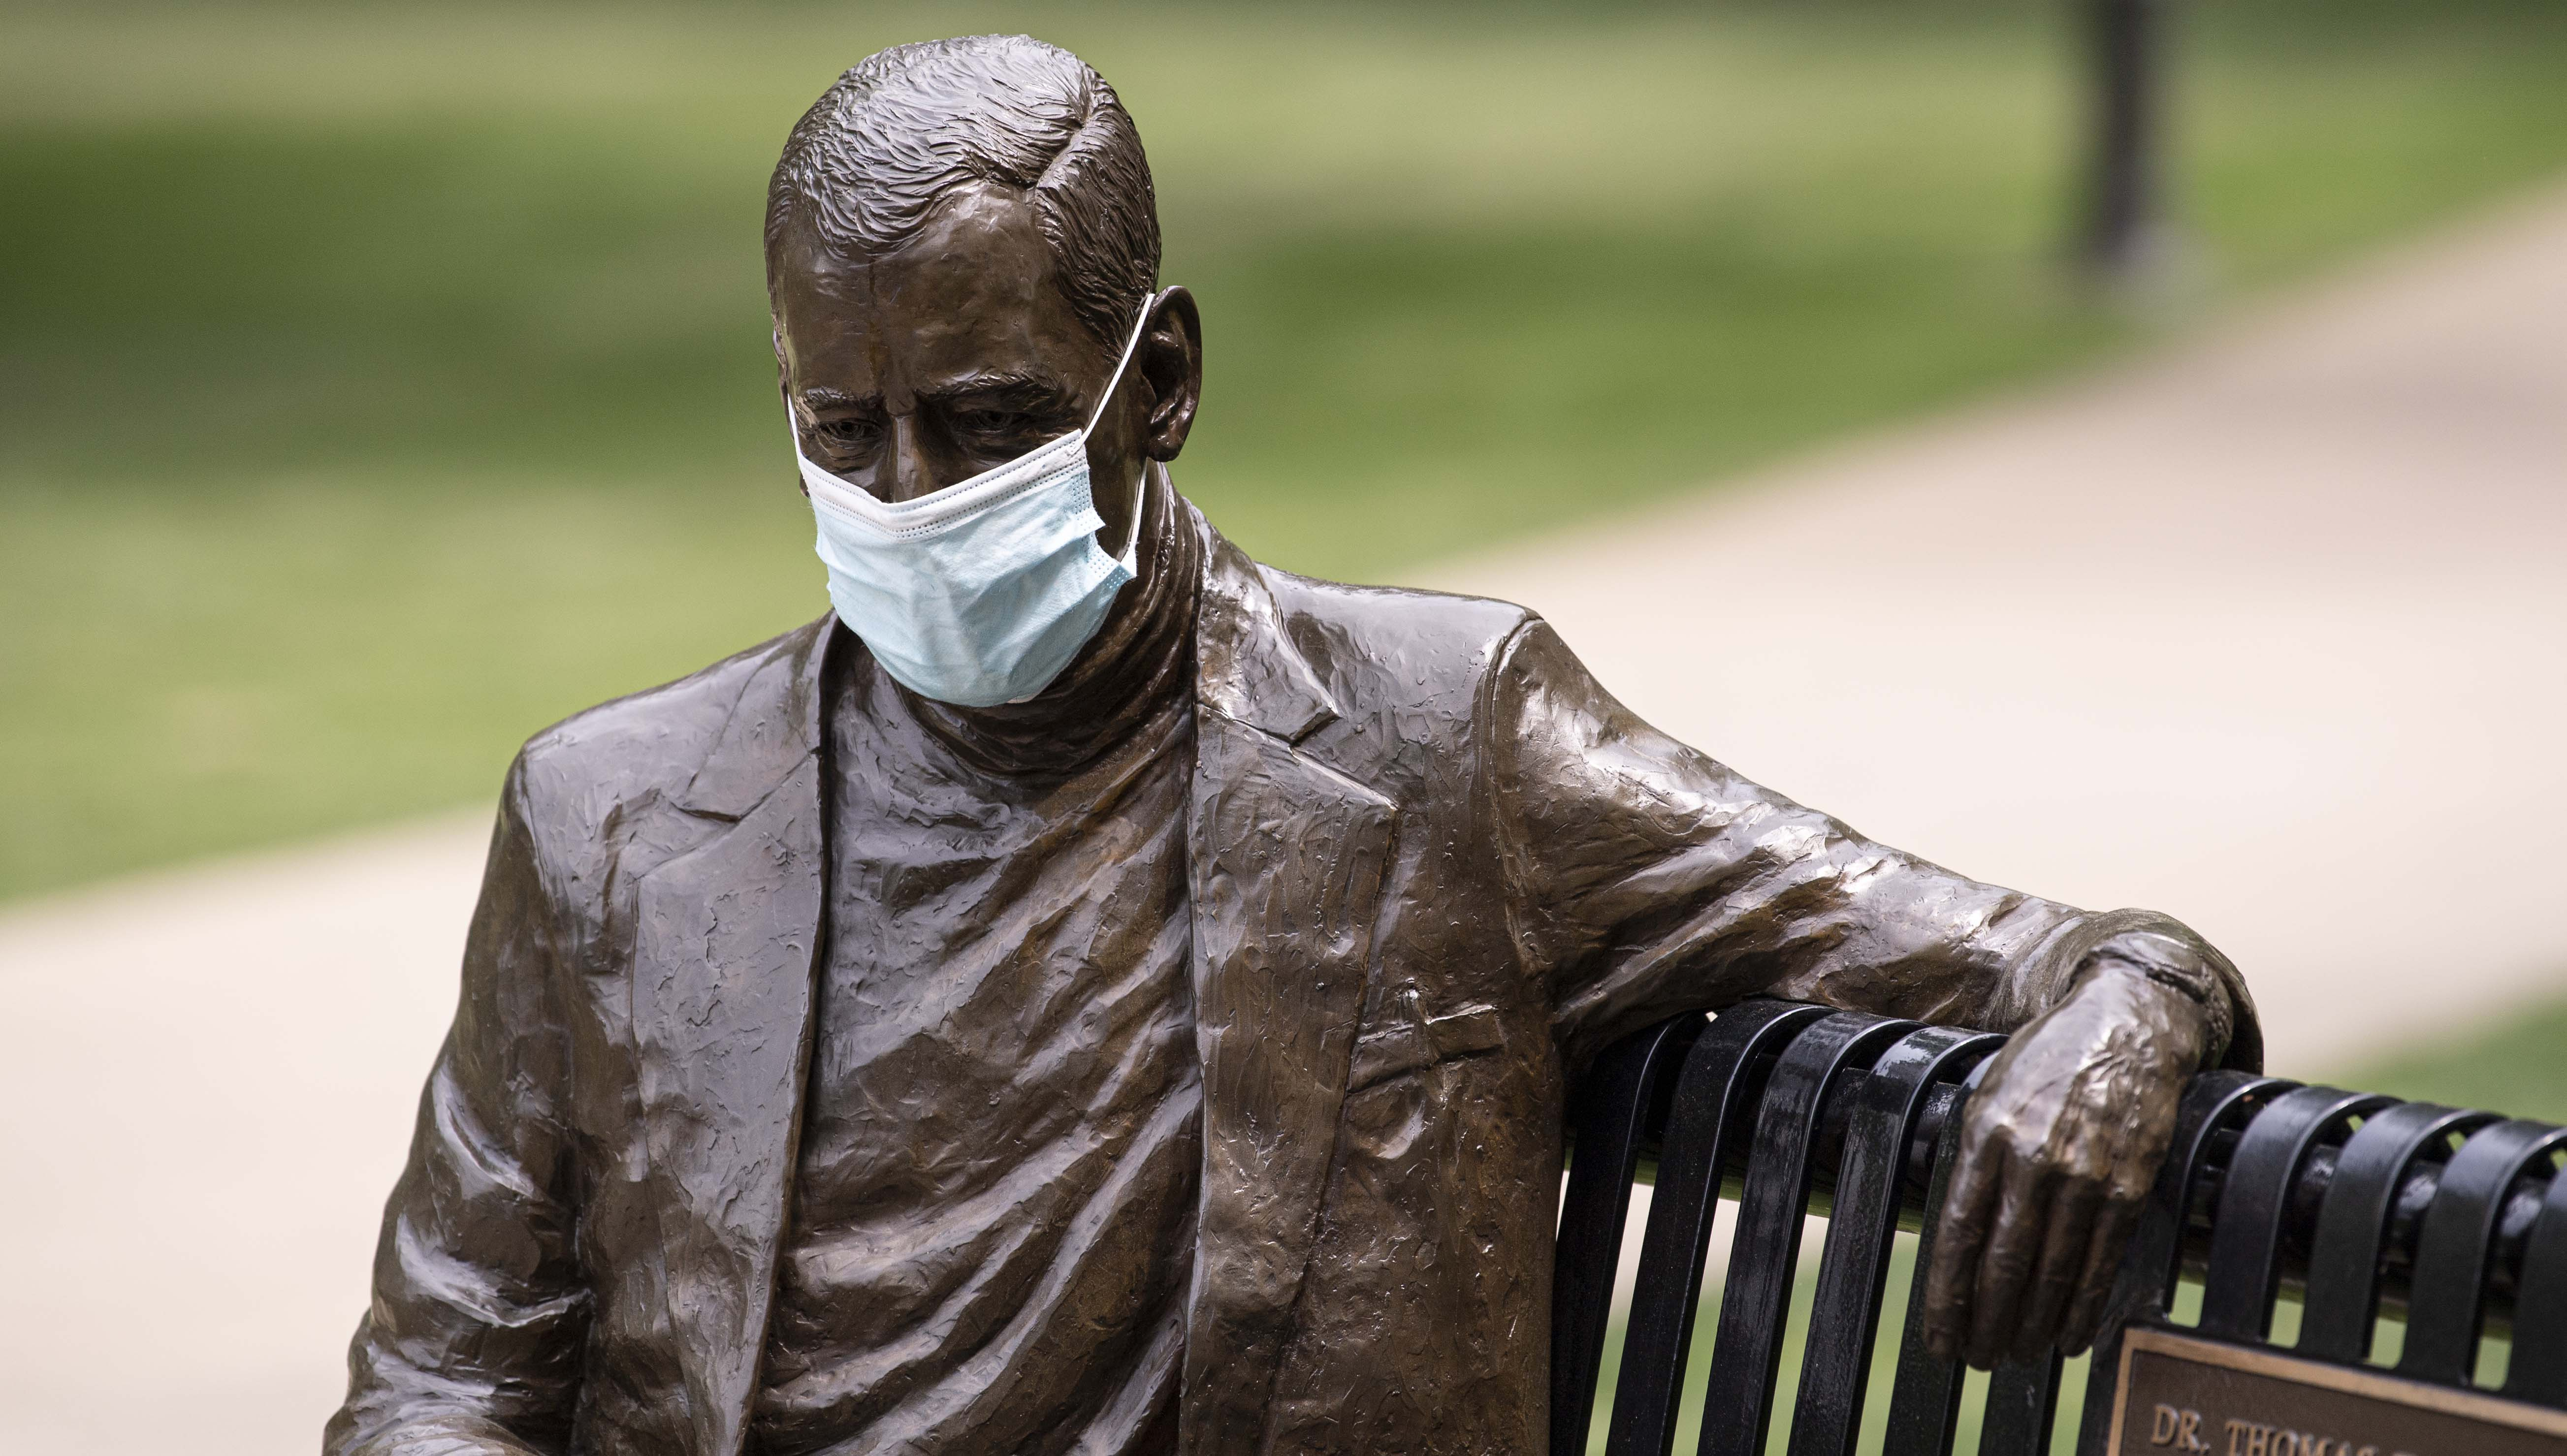 Statue of Thomas Starzl with face mask